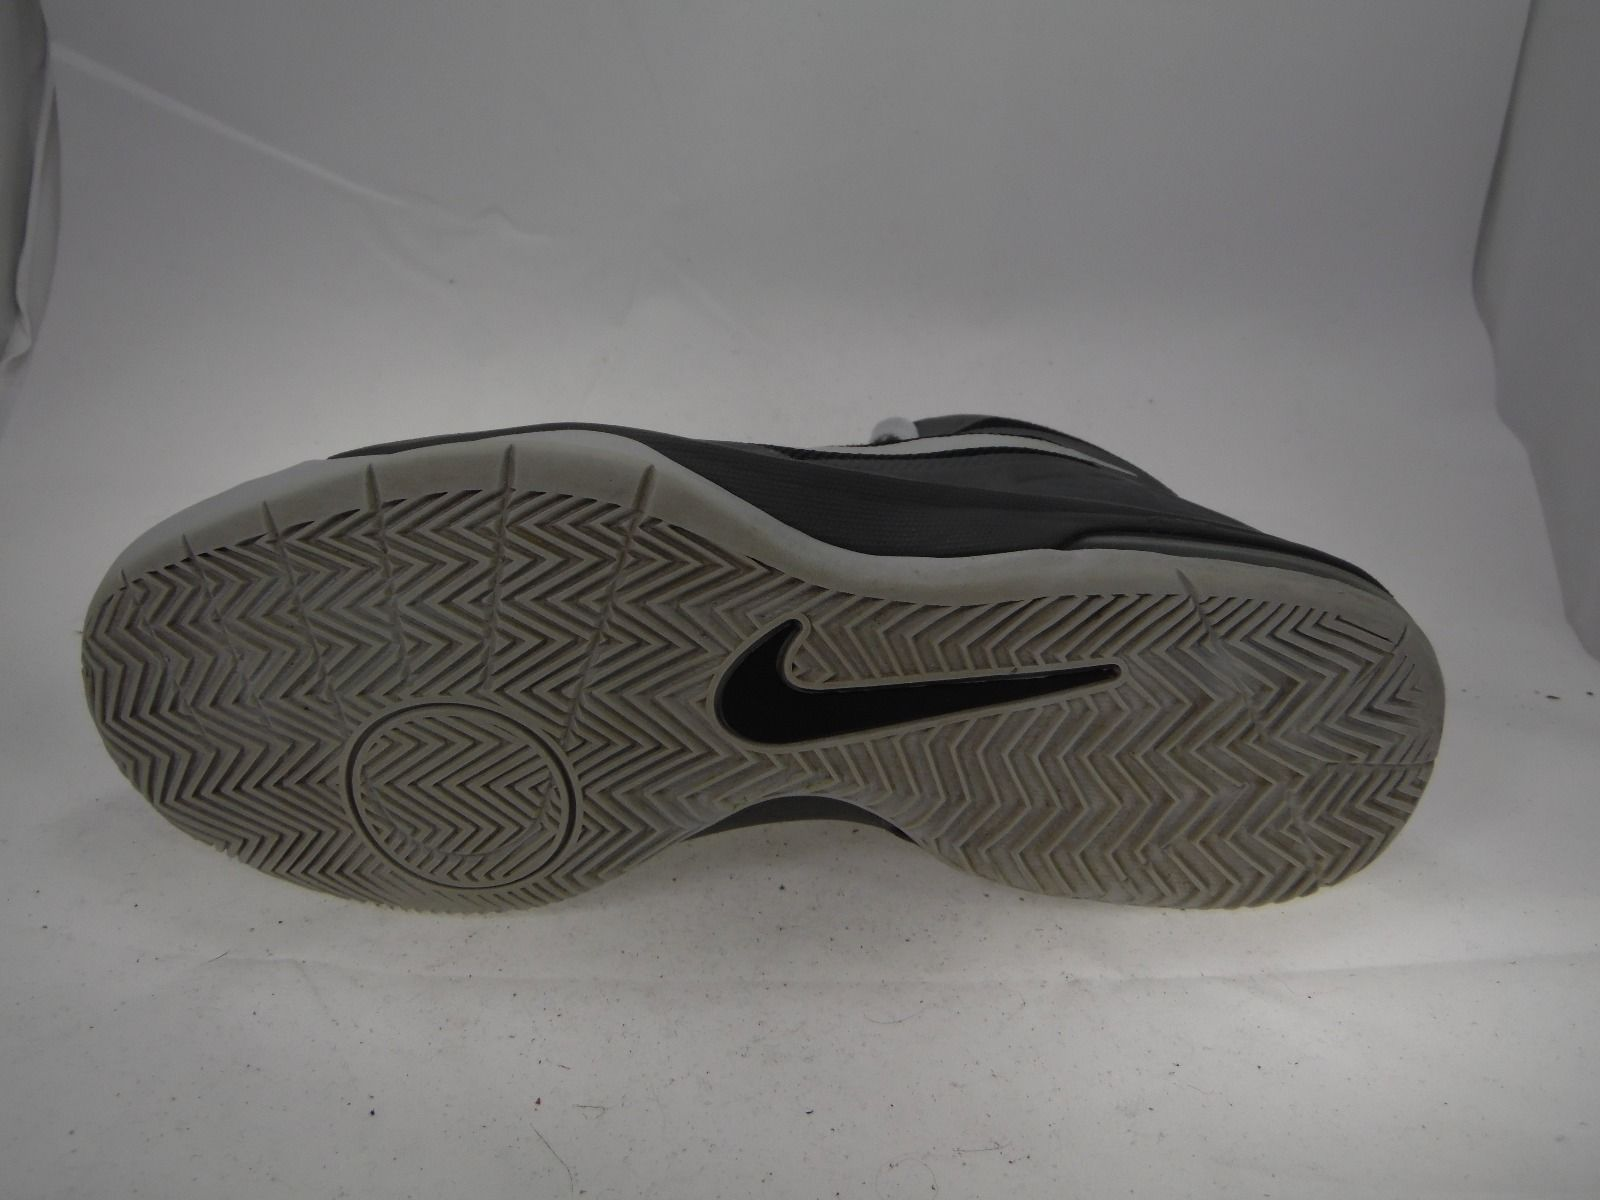 new product 5b195 5fecb NIKE Air Max Body U 599350 001 Grey Black Sneakers Shoes Size 10.5. 1  2